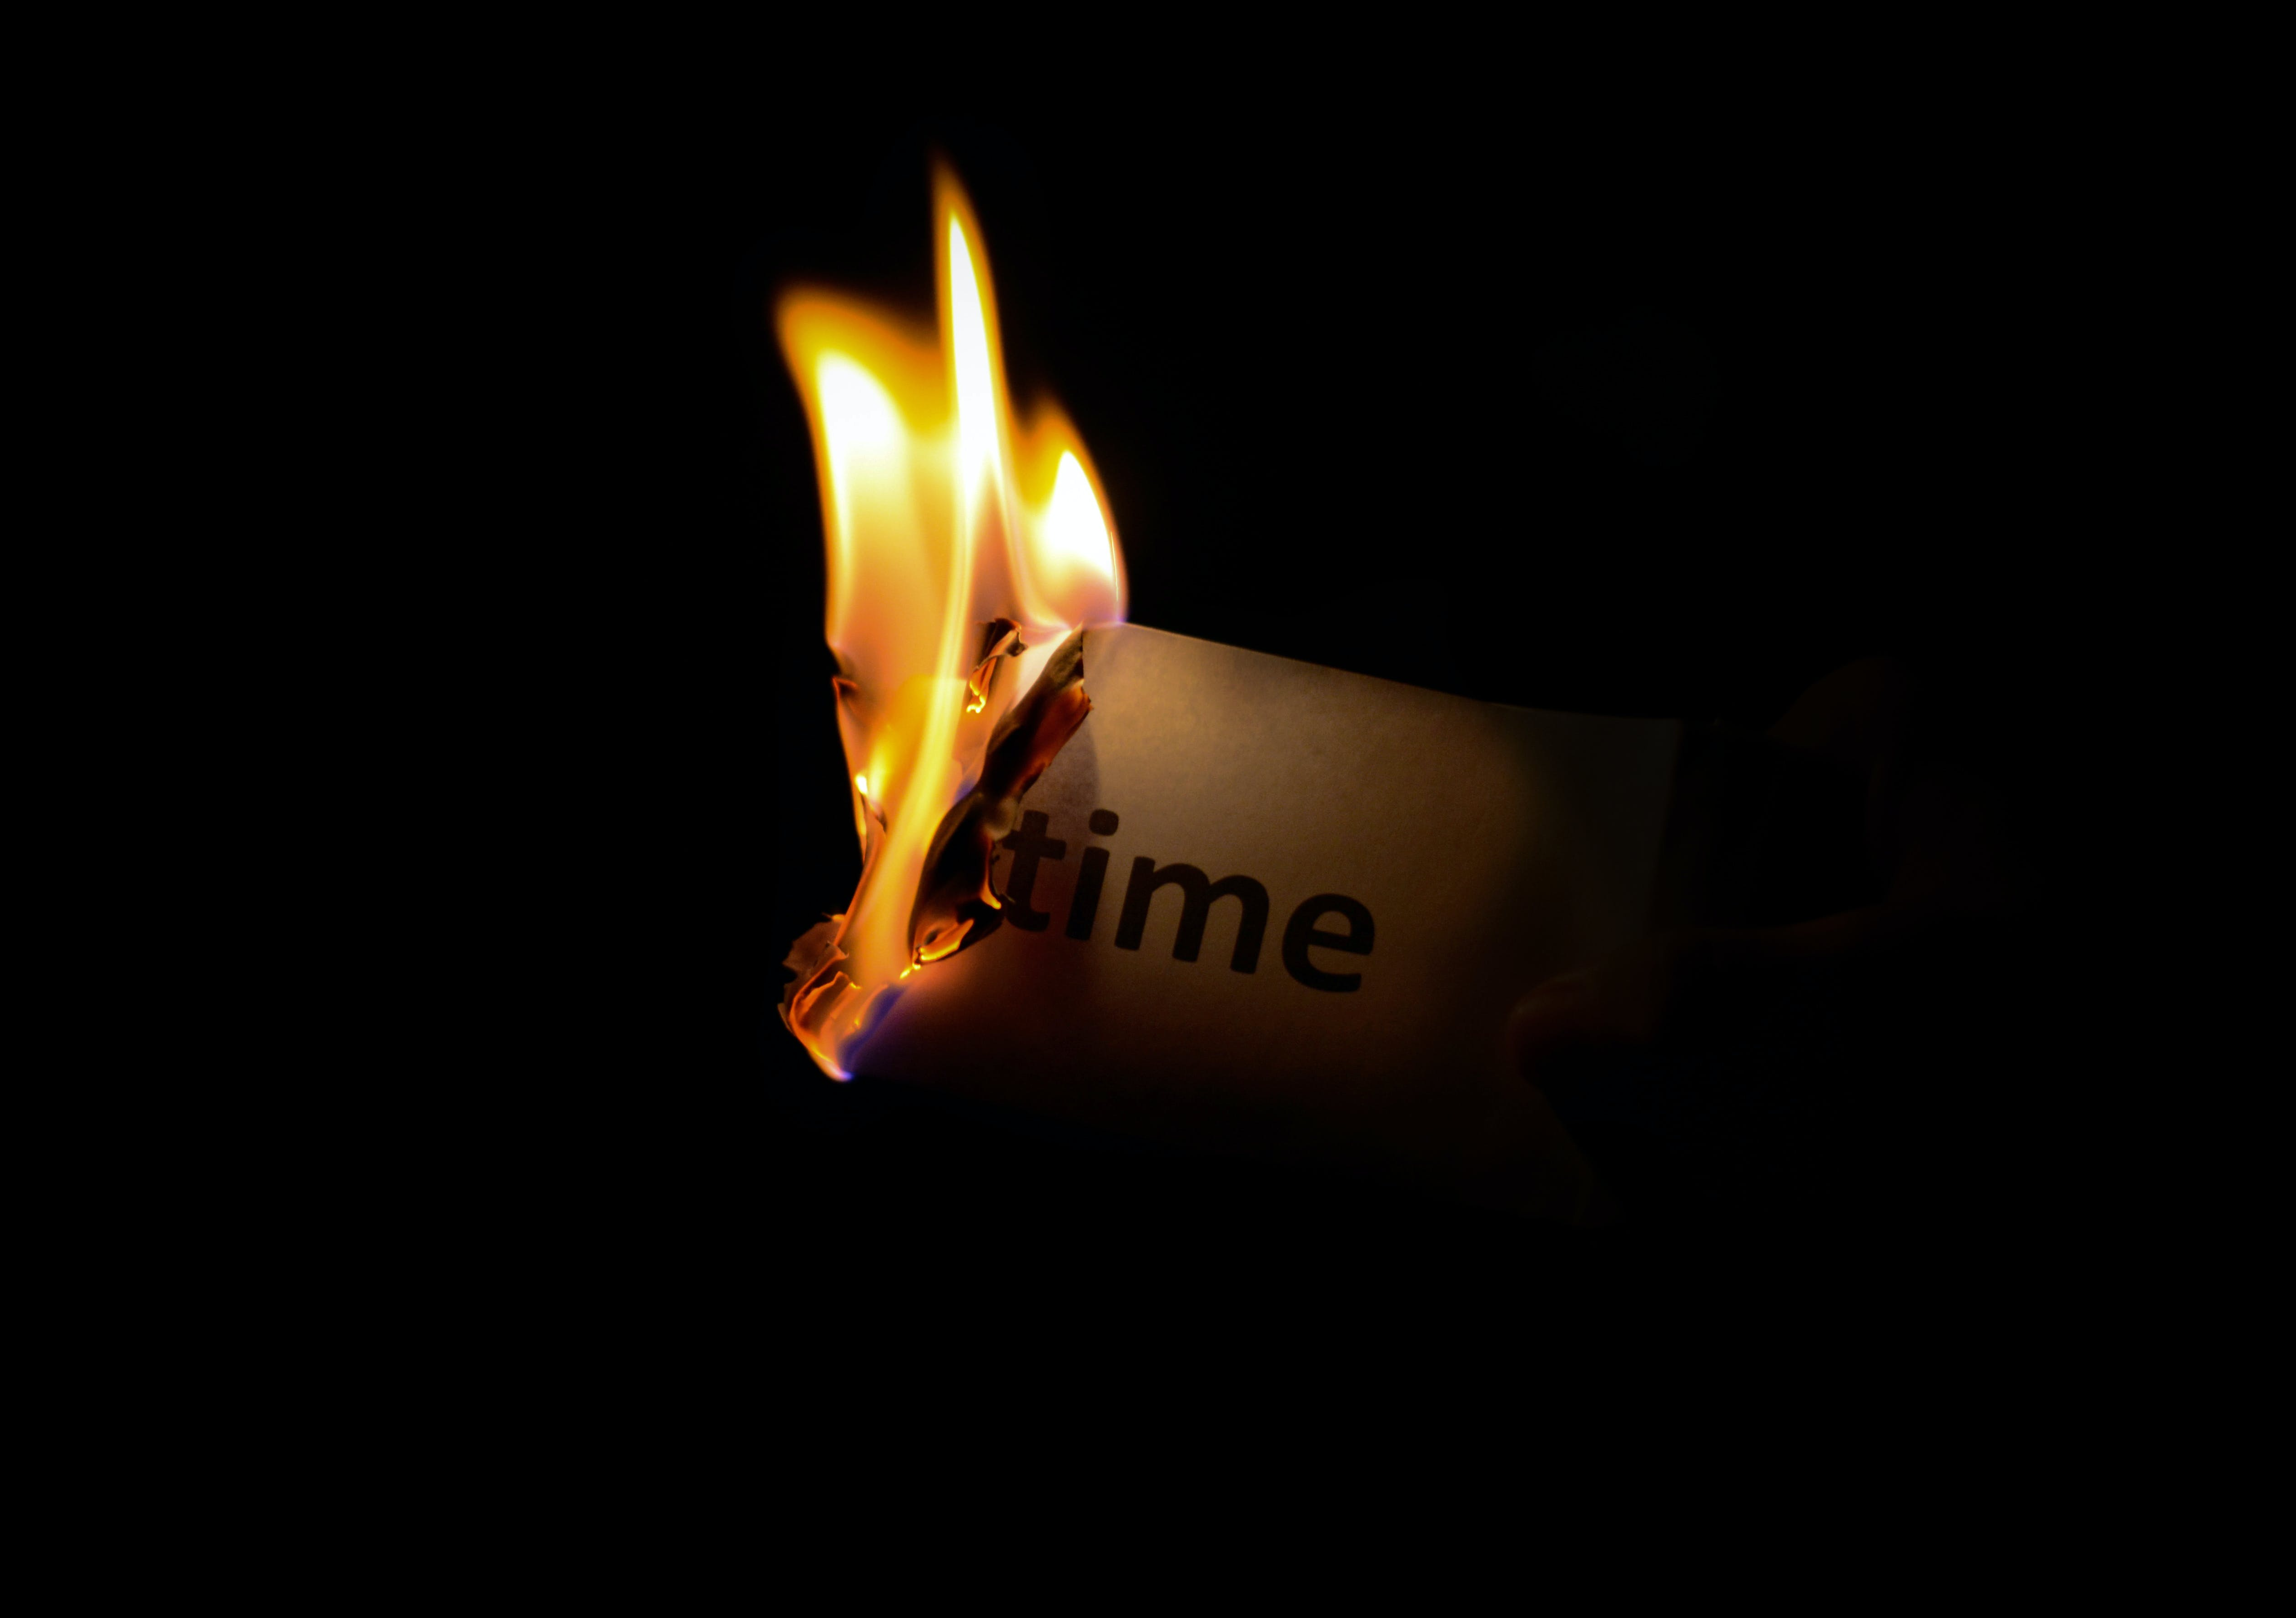 Person Holding Burning Paper in Dark Room